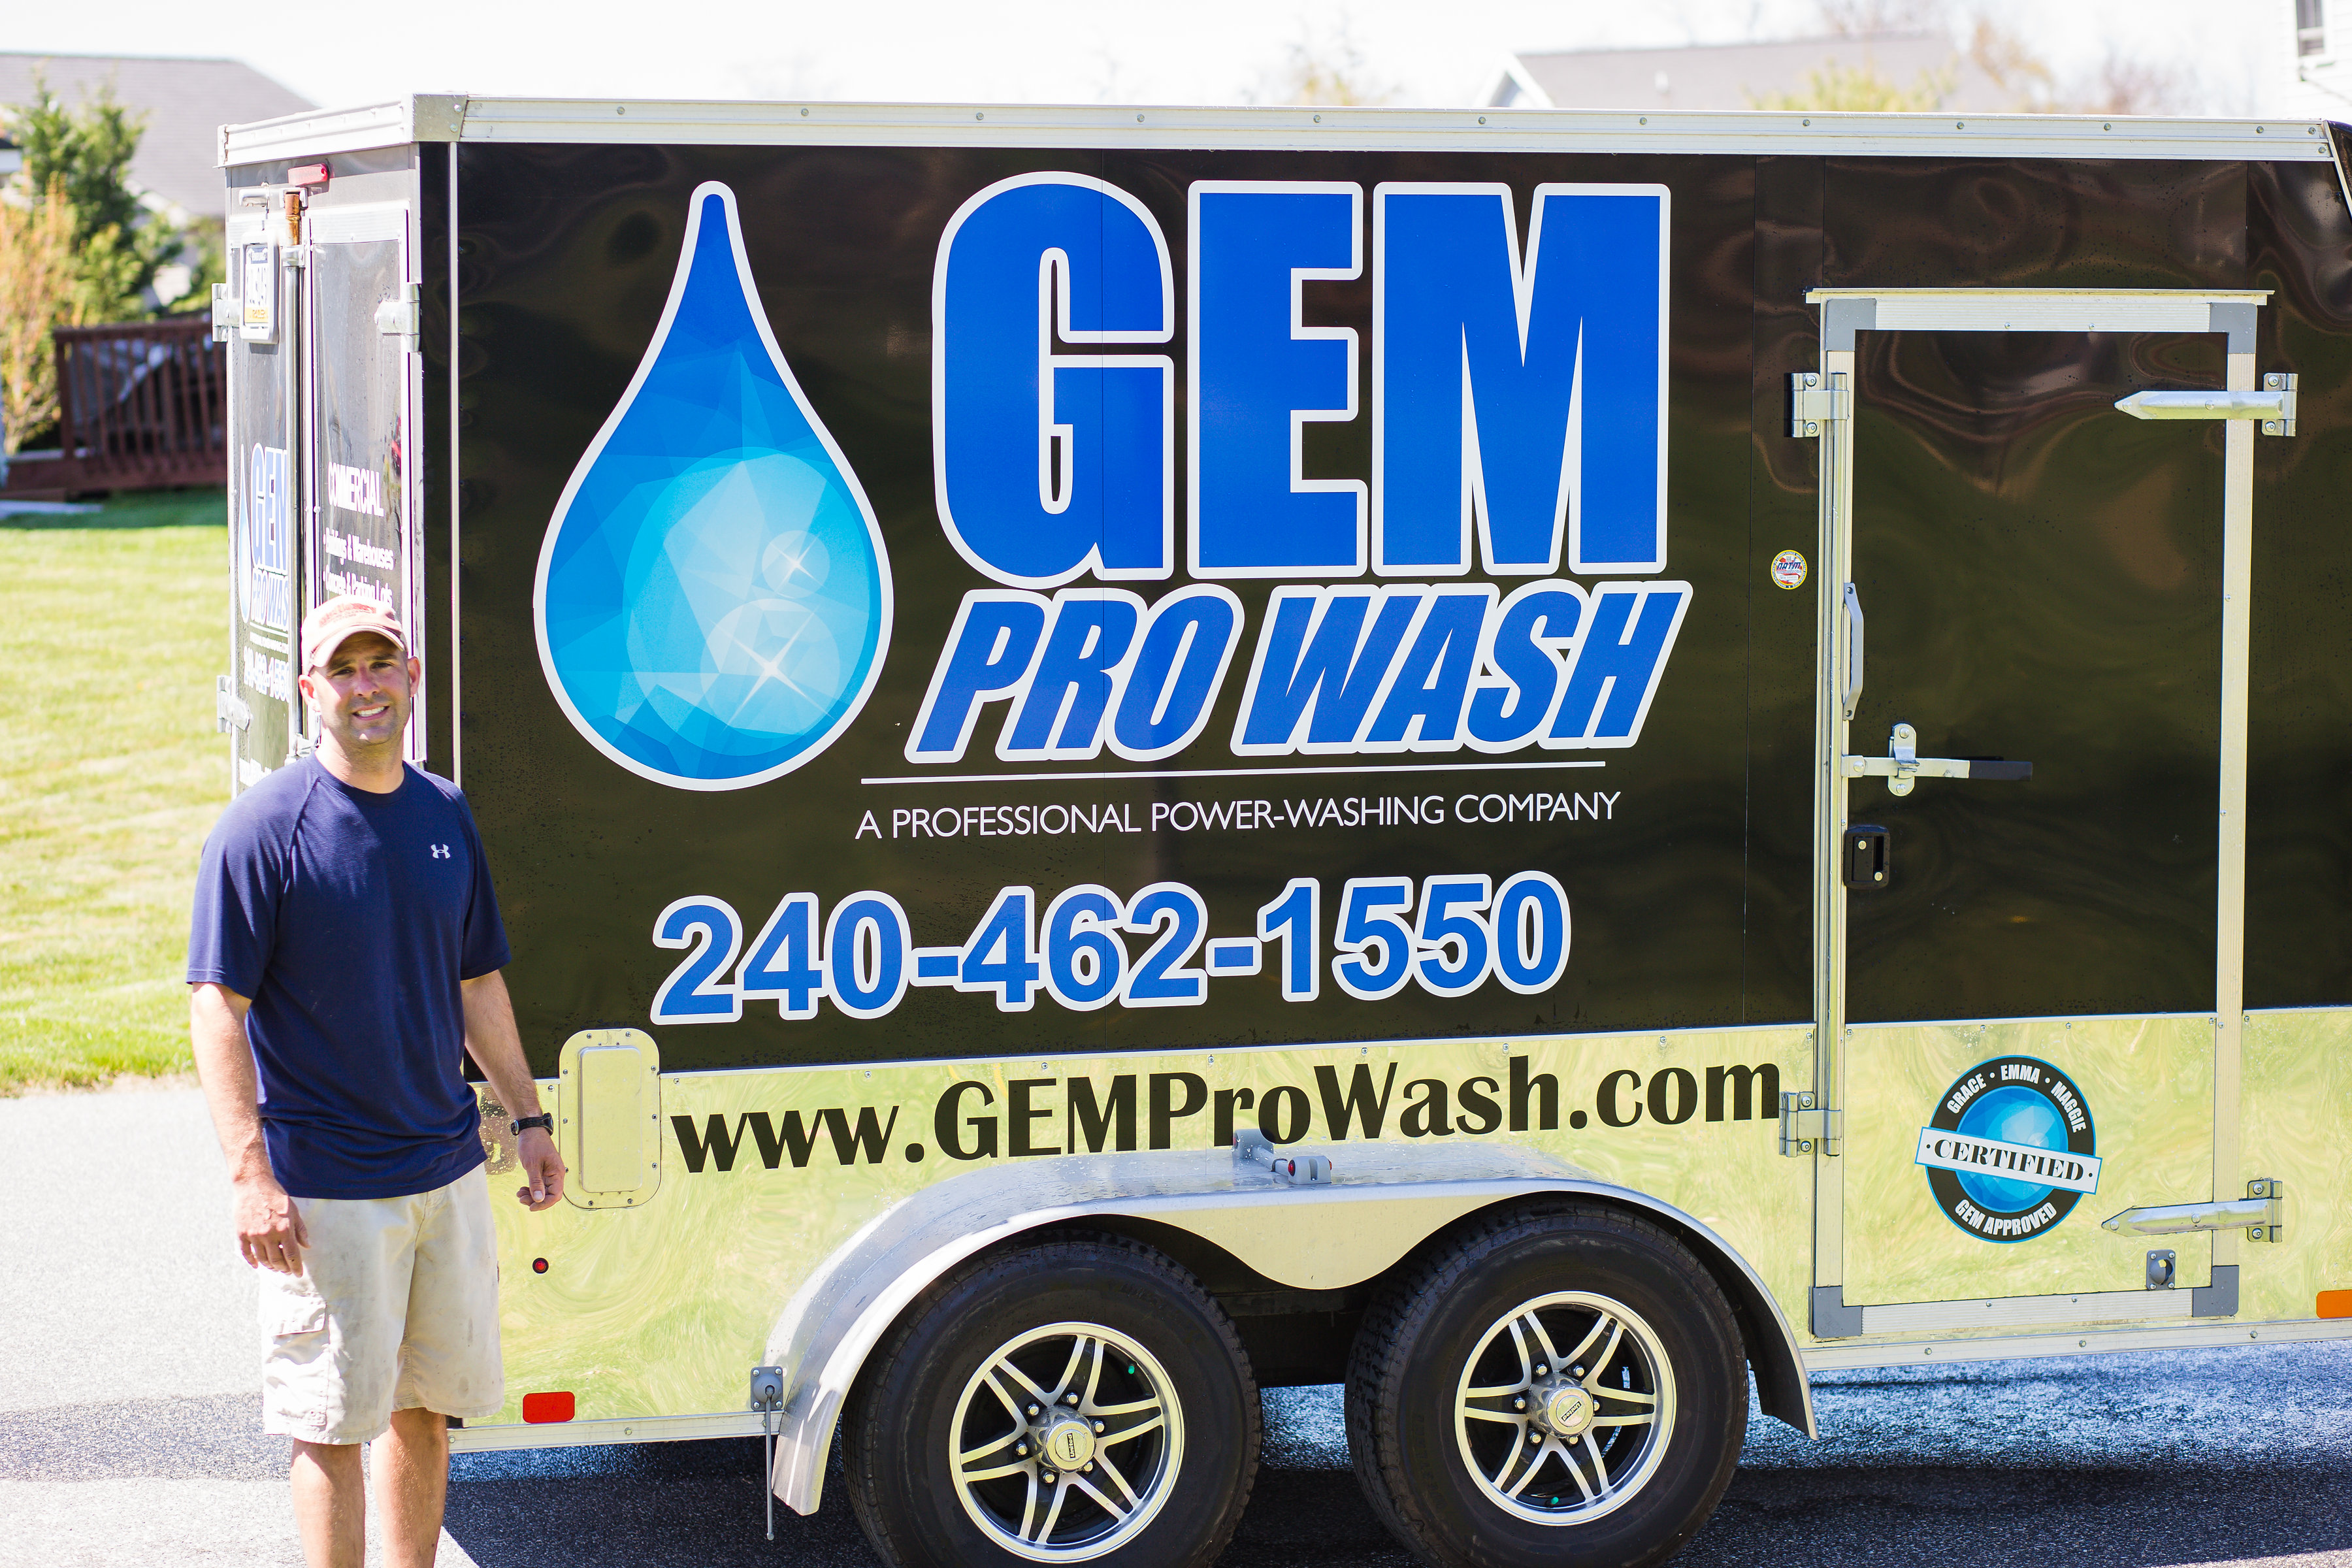 Gem Pro Wash | Power Washing Service in Greencastle PA